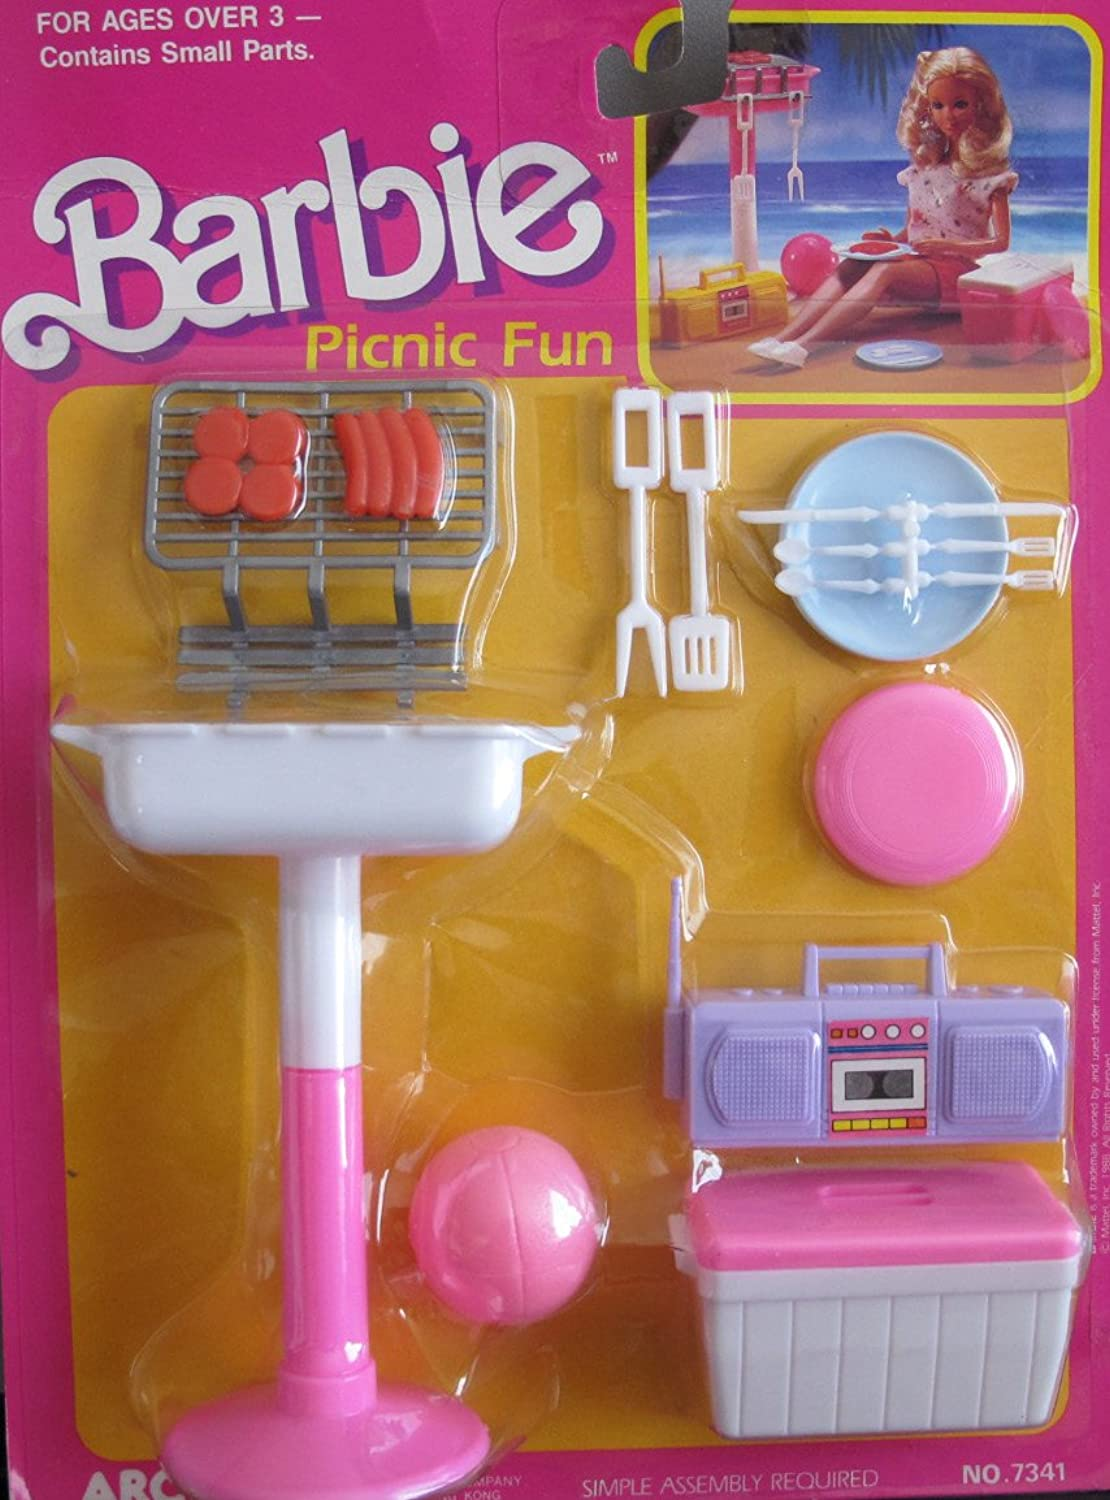 Barbie PICNIC FUN Playset w Barbecue, Food & MORE  (1988 Arco Toys, Mattel)